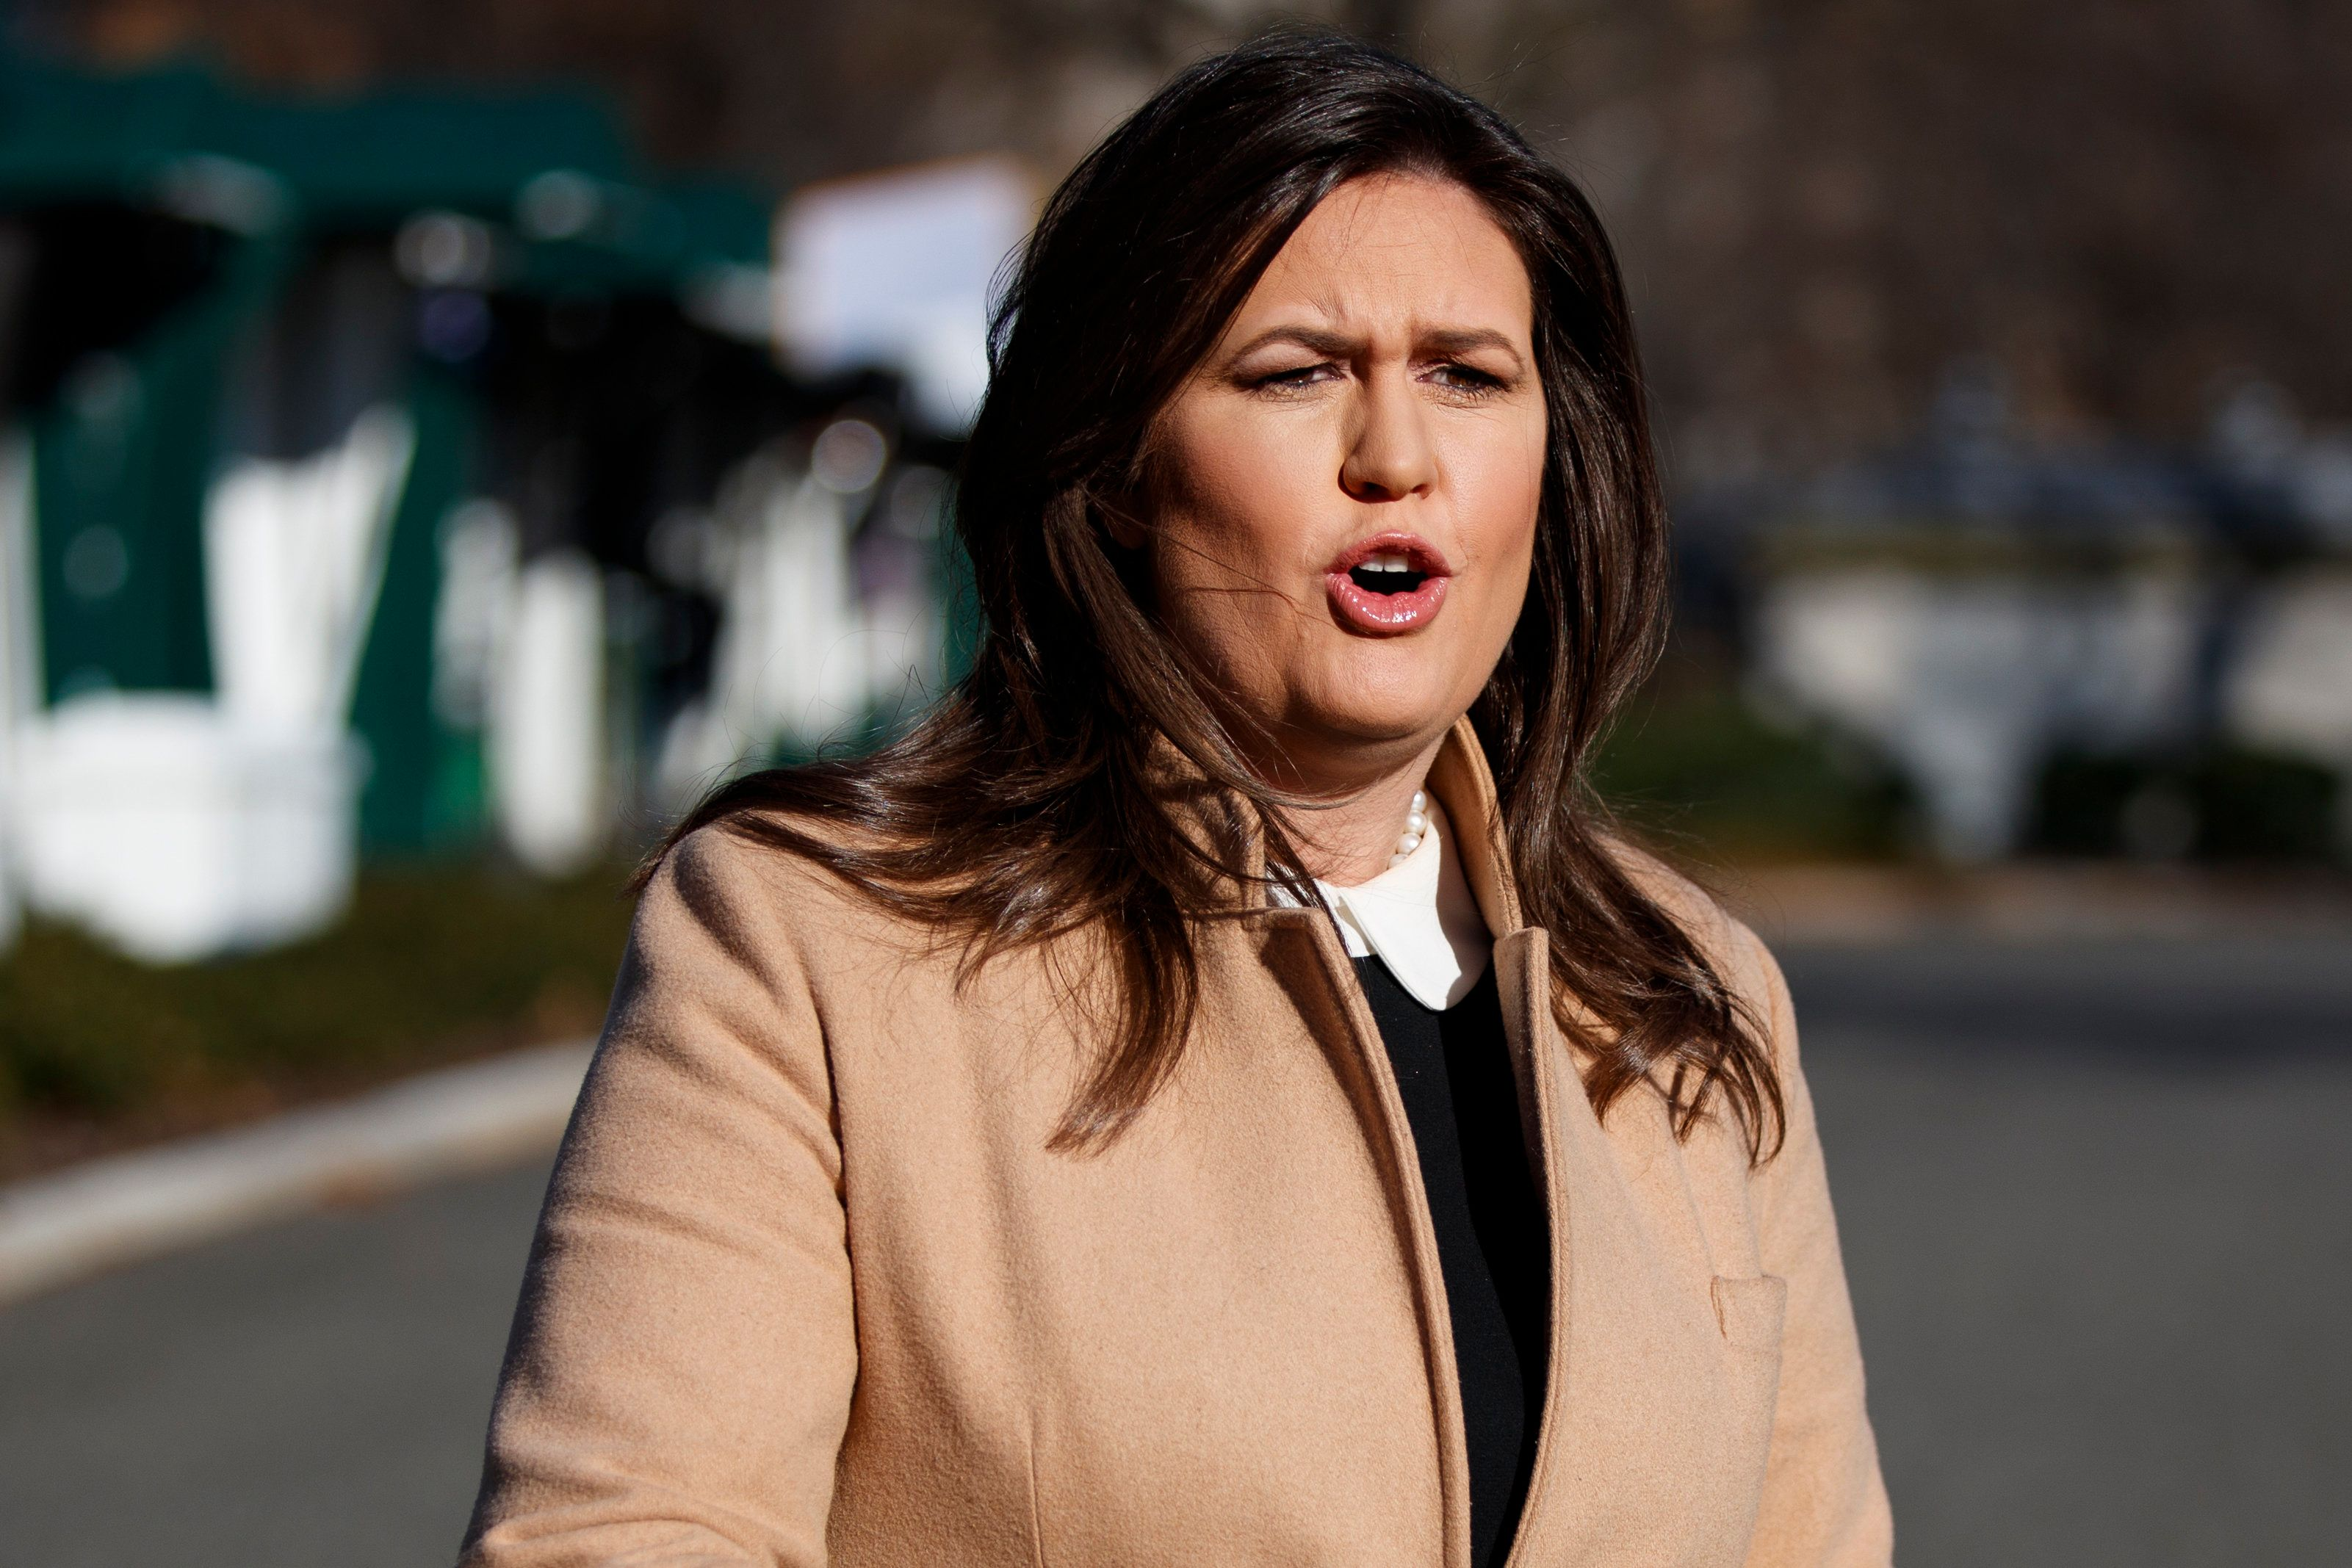 White House press secretary Sarah Huckabee Sanders talks with reporters outside the White House, Tuesday, Dec. 18, 2018, in Washington. (AP Photo/Evan Vucci)